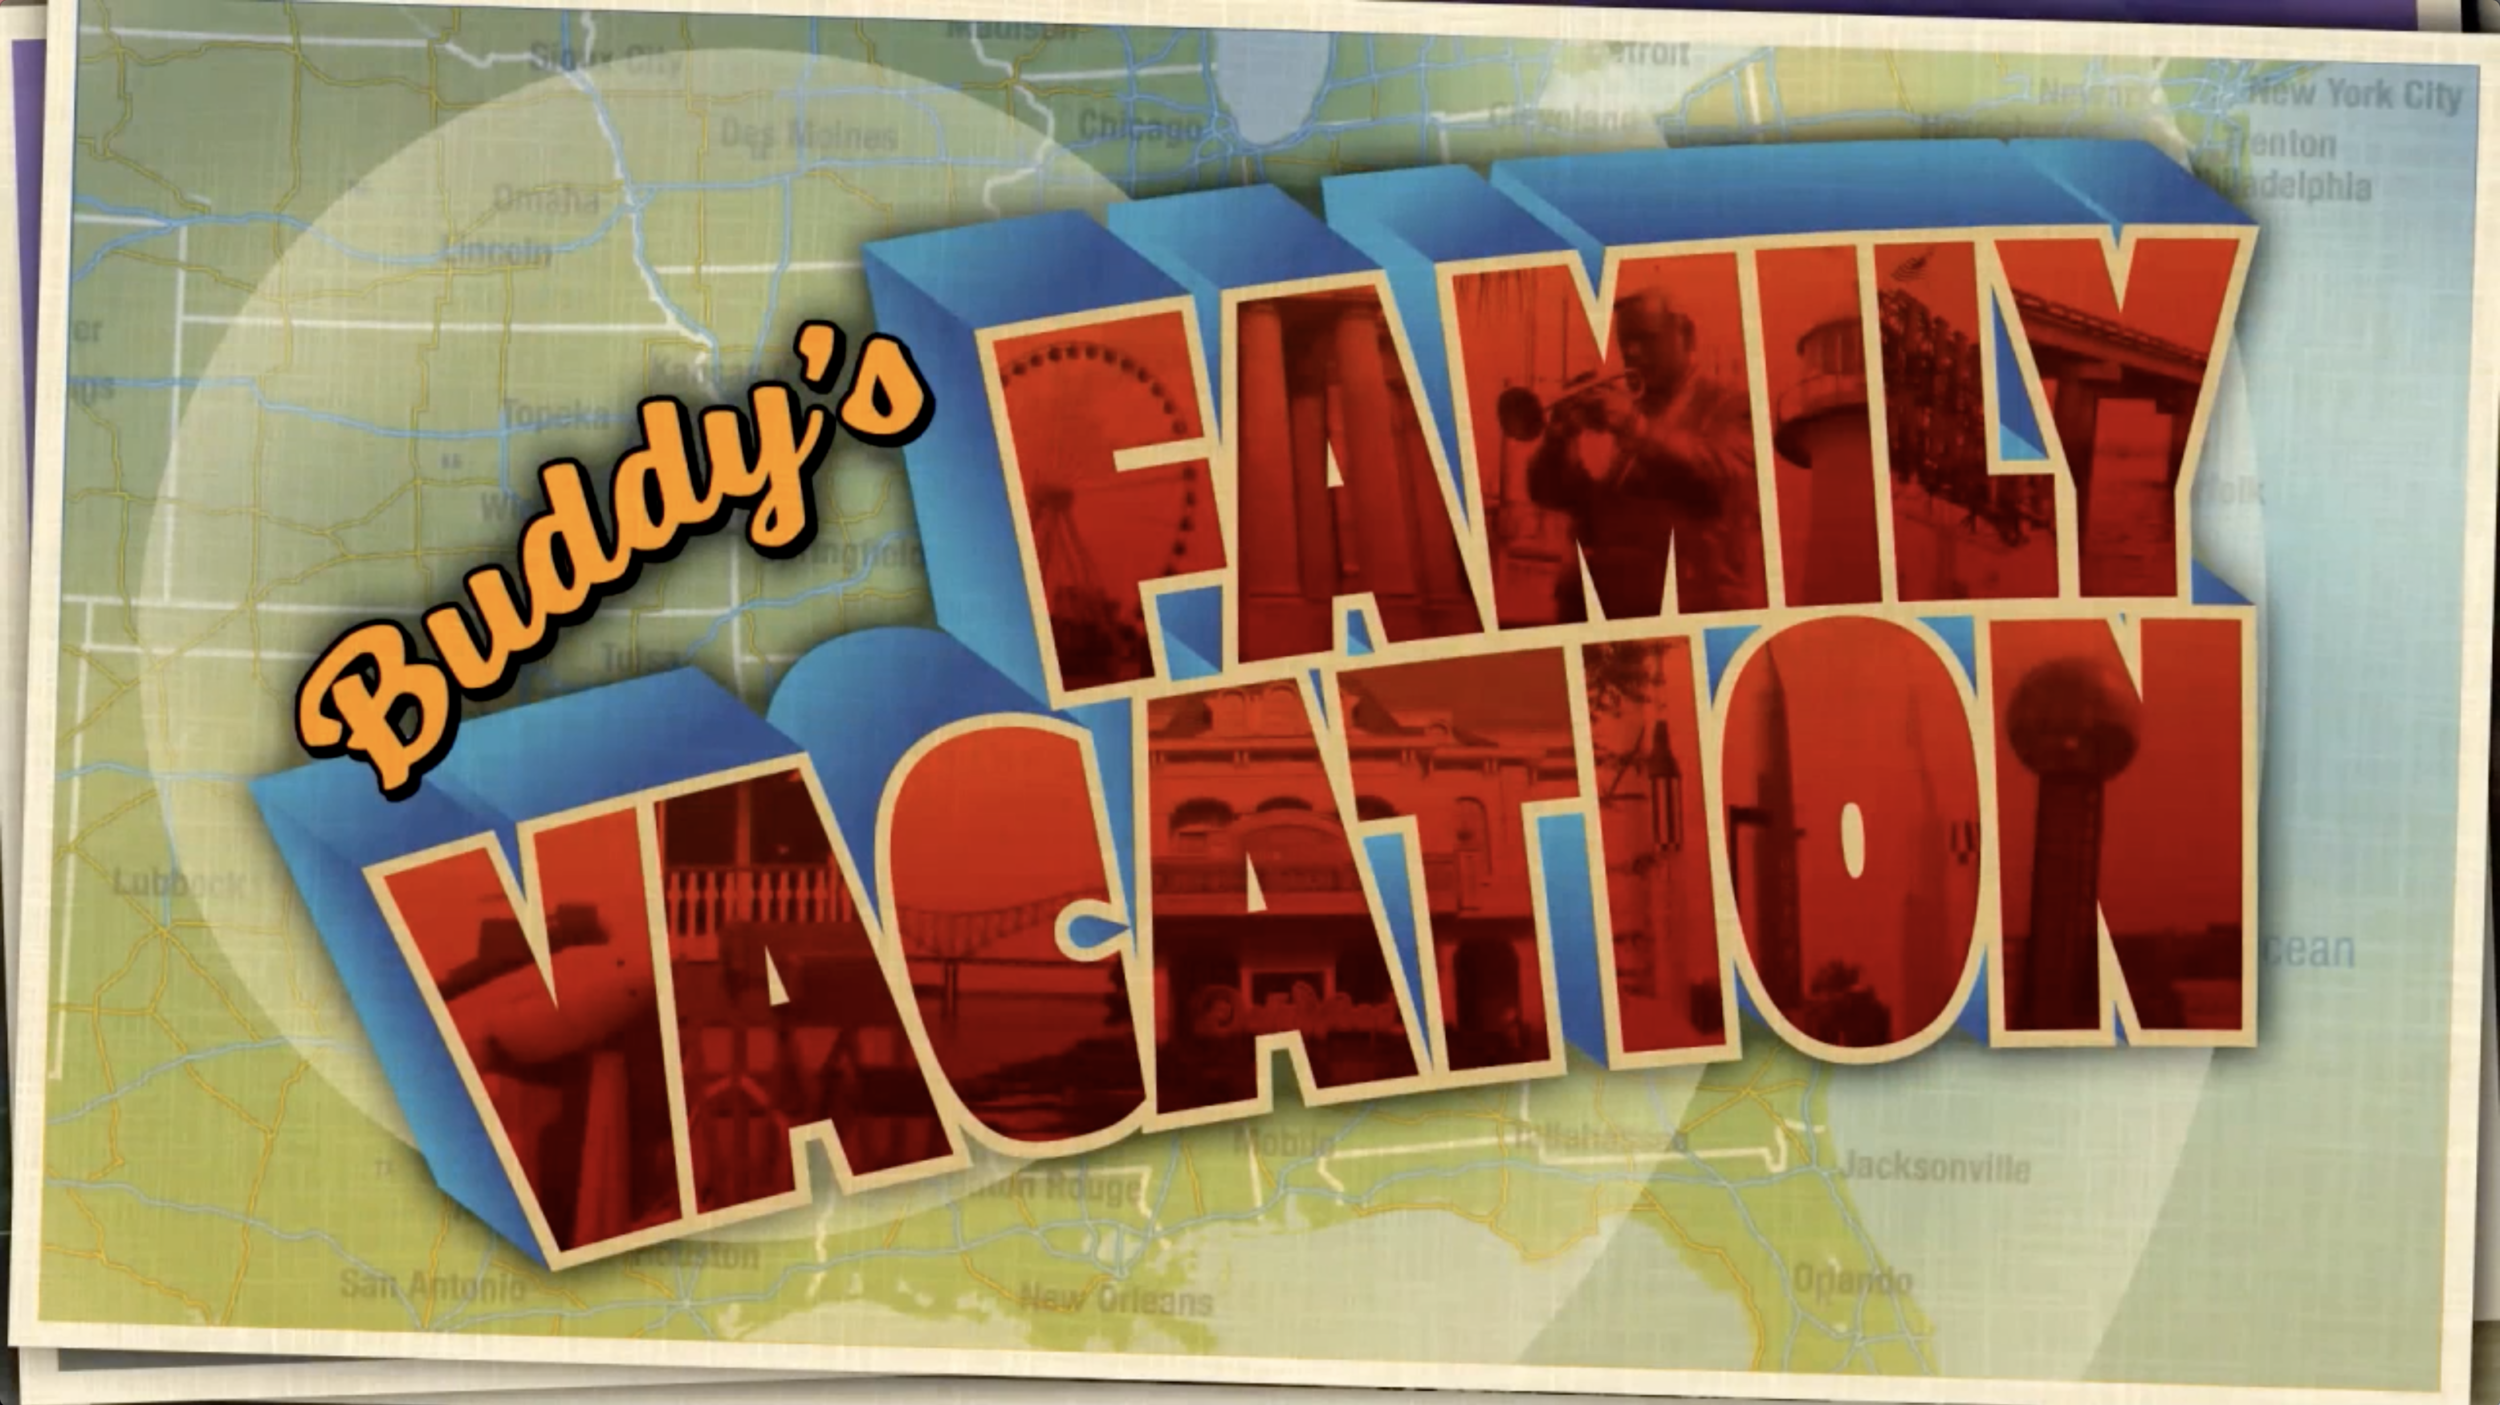 Buddy_family_vacay_4.png